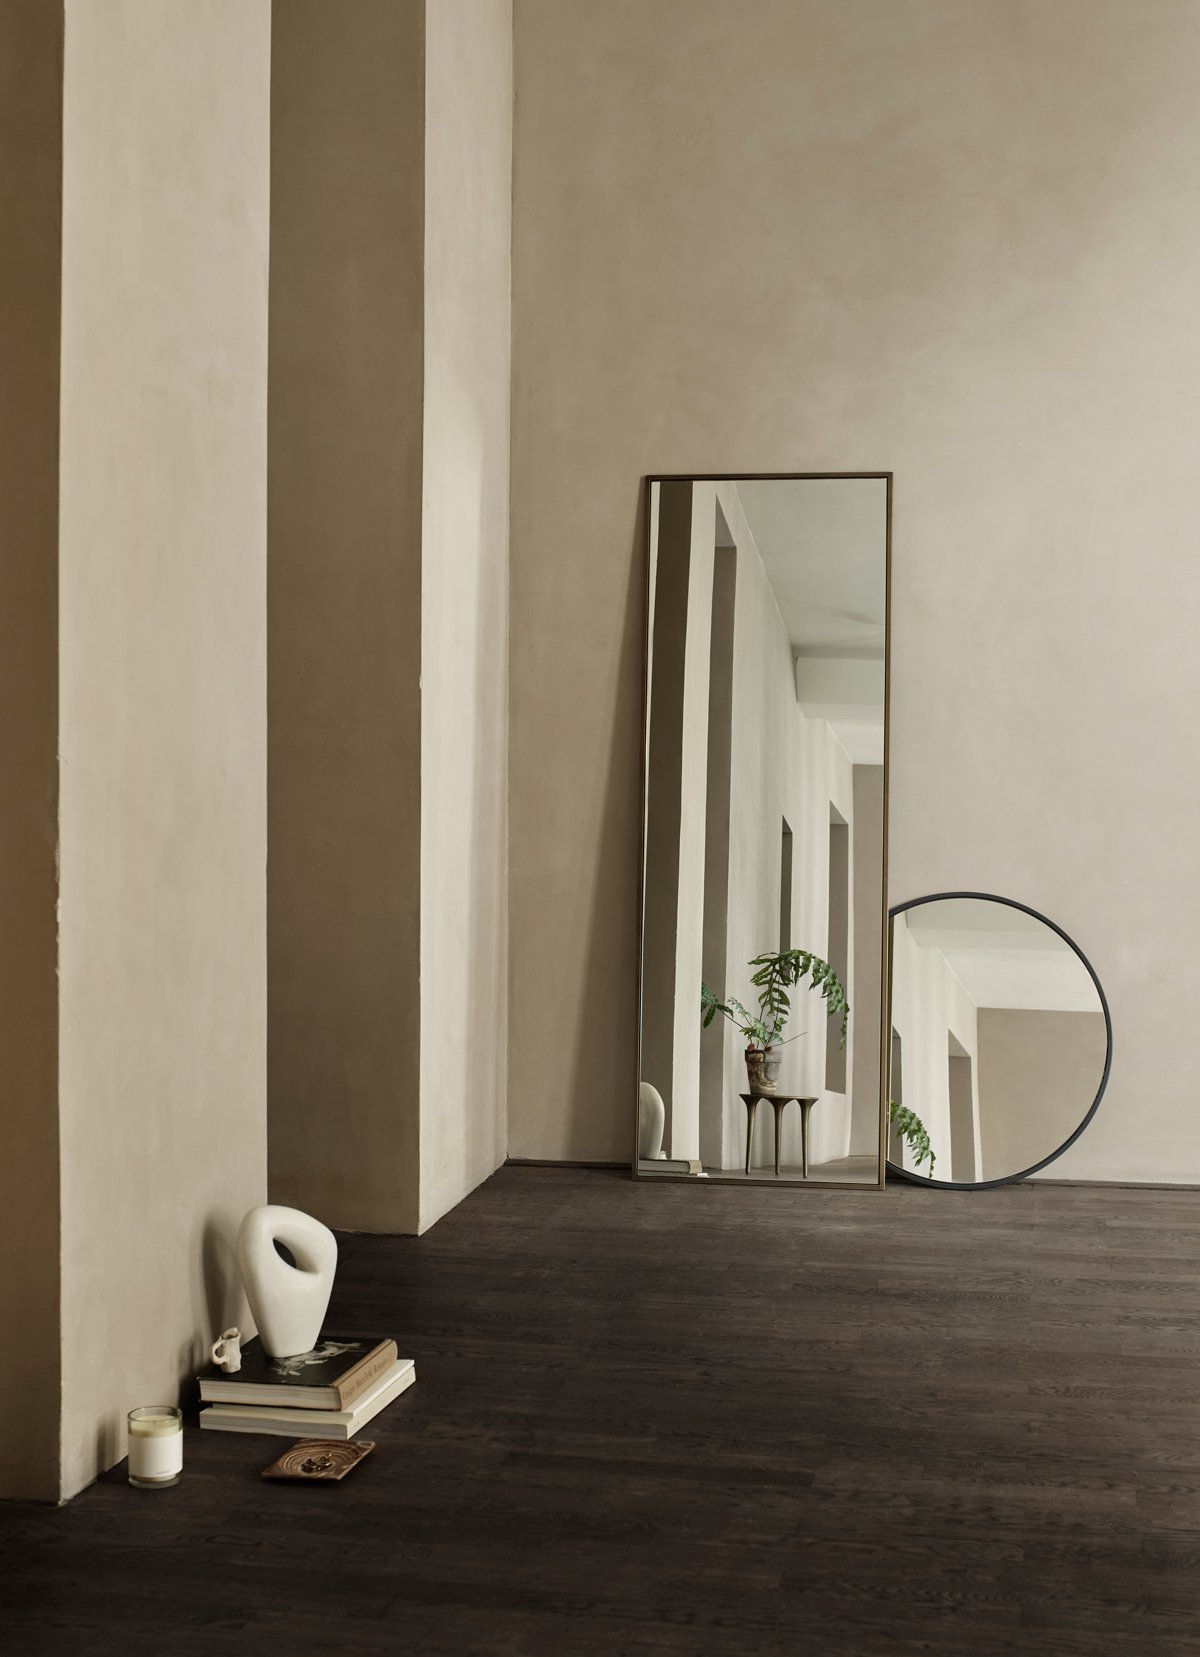 METMIRROR80X180-HG_METMIRRORO70-HG_SCENT-L-FIGTREE_SCENT-L-WHITETEA_SCENT-L-WOODNOTE_SCENT-L-CHRISTMAS_SCENT-L-DECEMBER.jpg